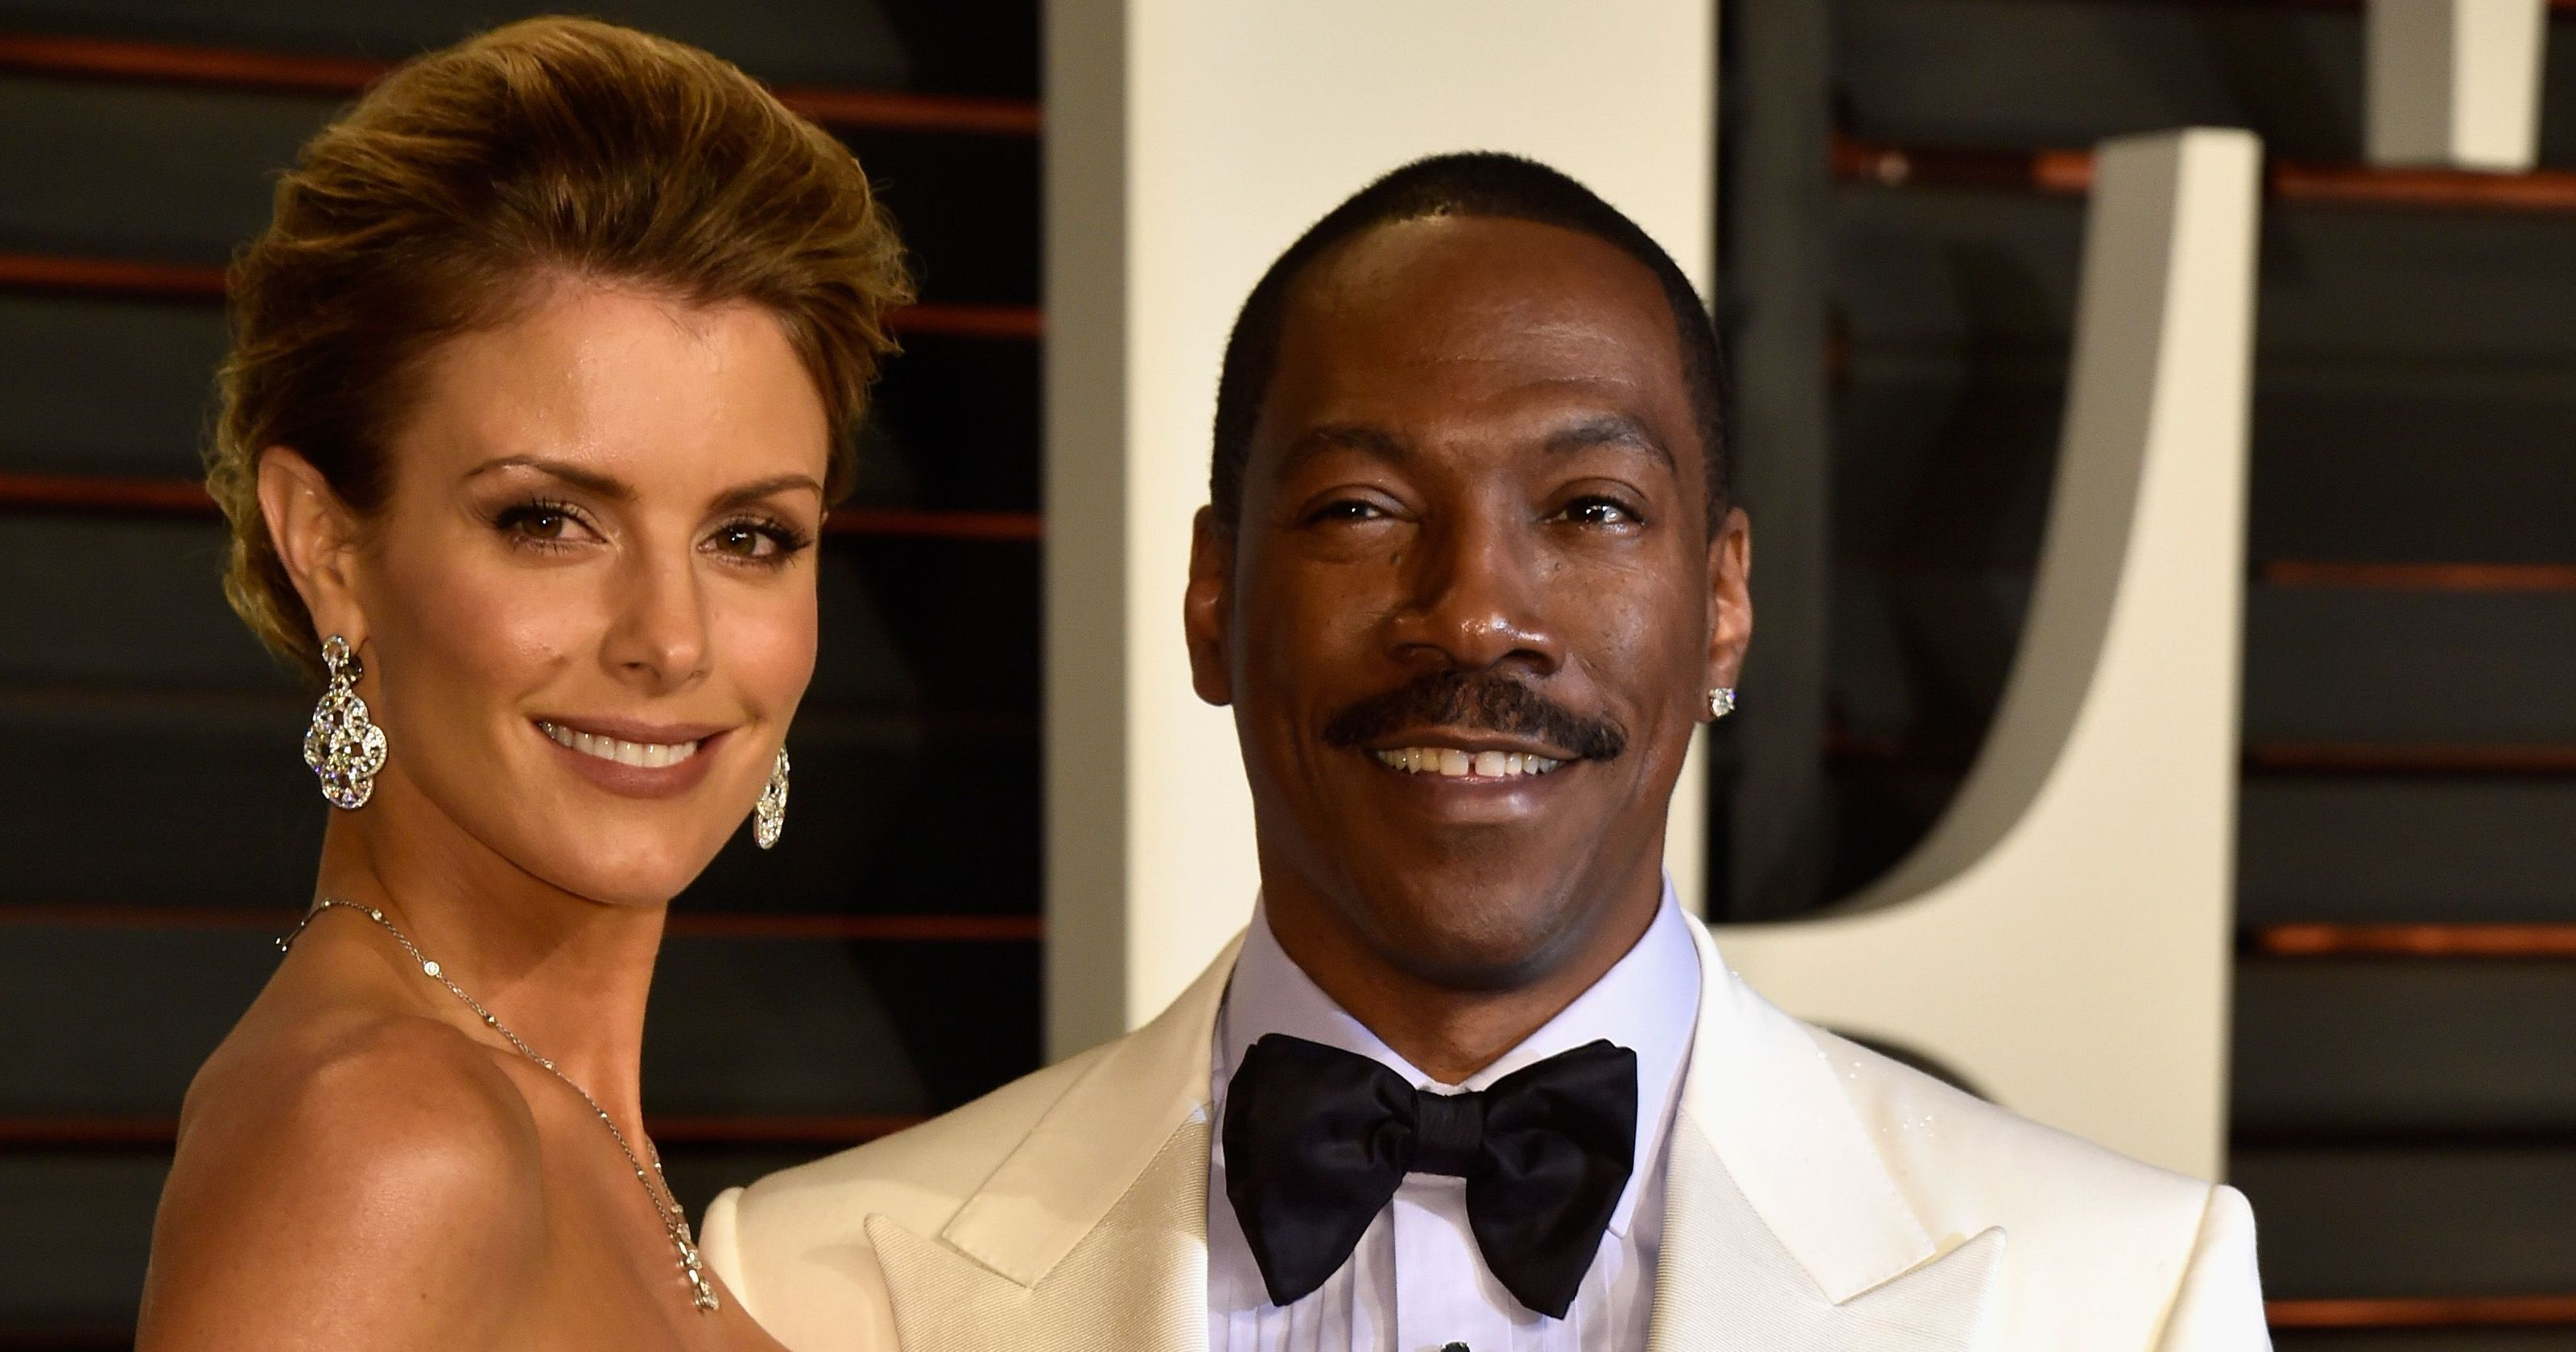 Eddie Murphy welcomes his 10th child, a baby boy Max, with fiancee Paige Butcher